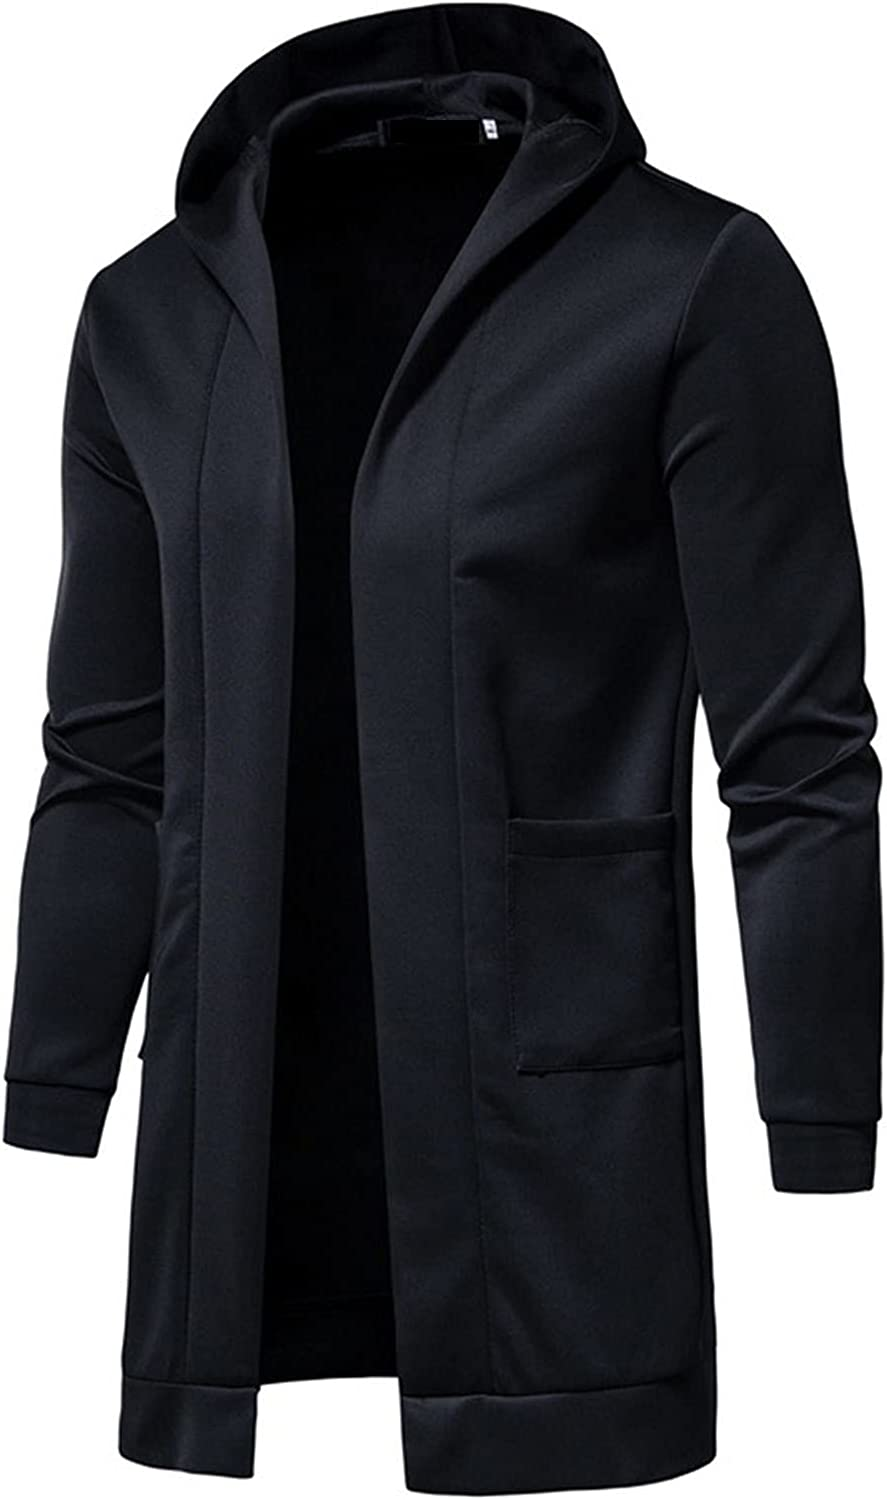 BEUU Mens Hooded Solid Long Trench Coat Plus Size Big and Tall Jacket Cardigan Fashion Long Sleeve Outwear Clothes